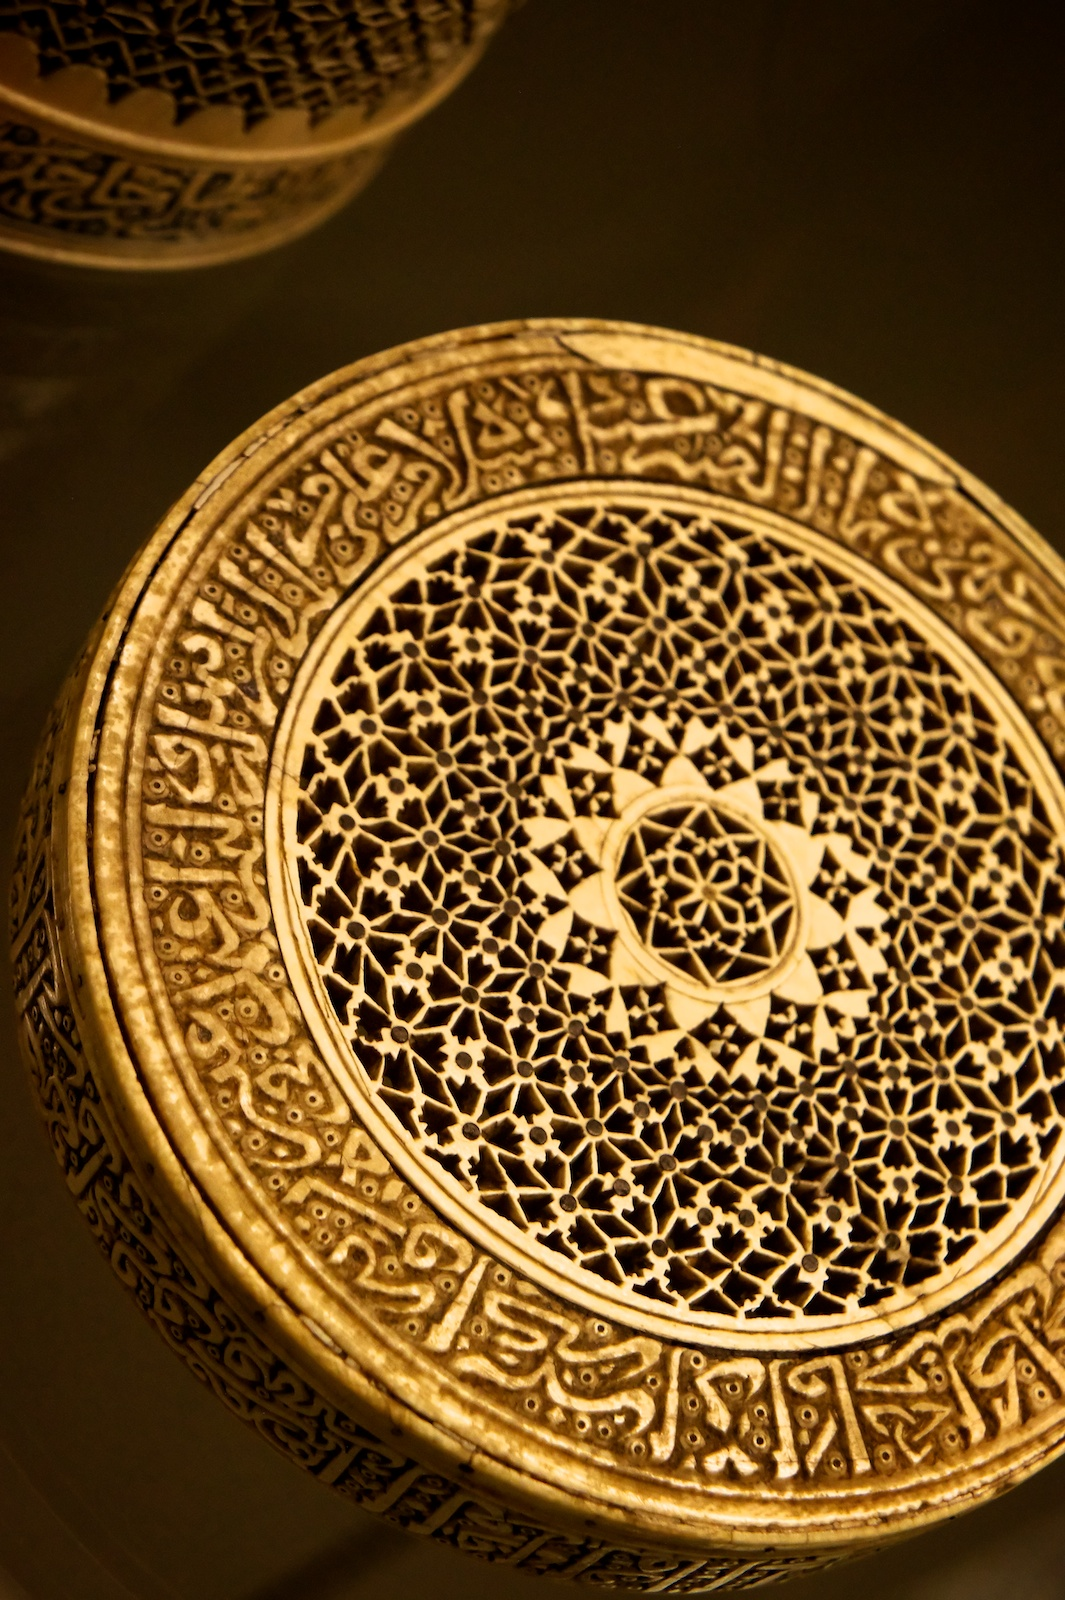 Beautiful Islamic Art - Articles about Islam